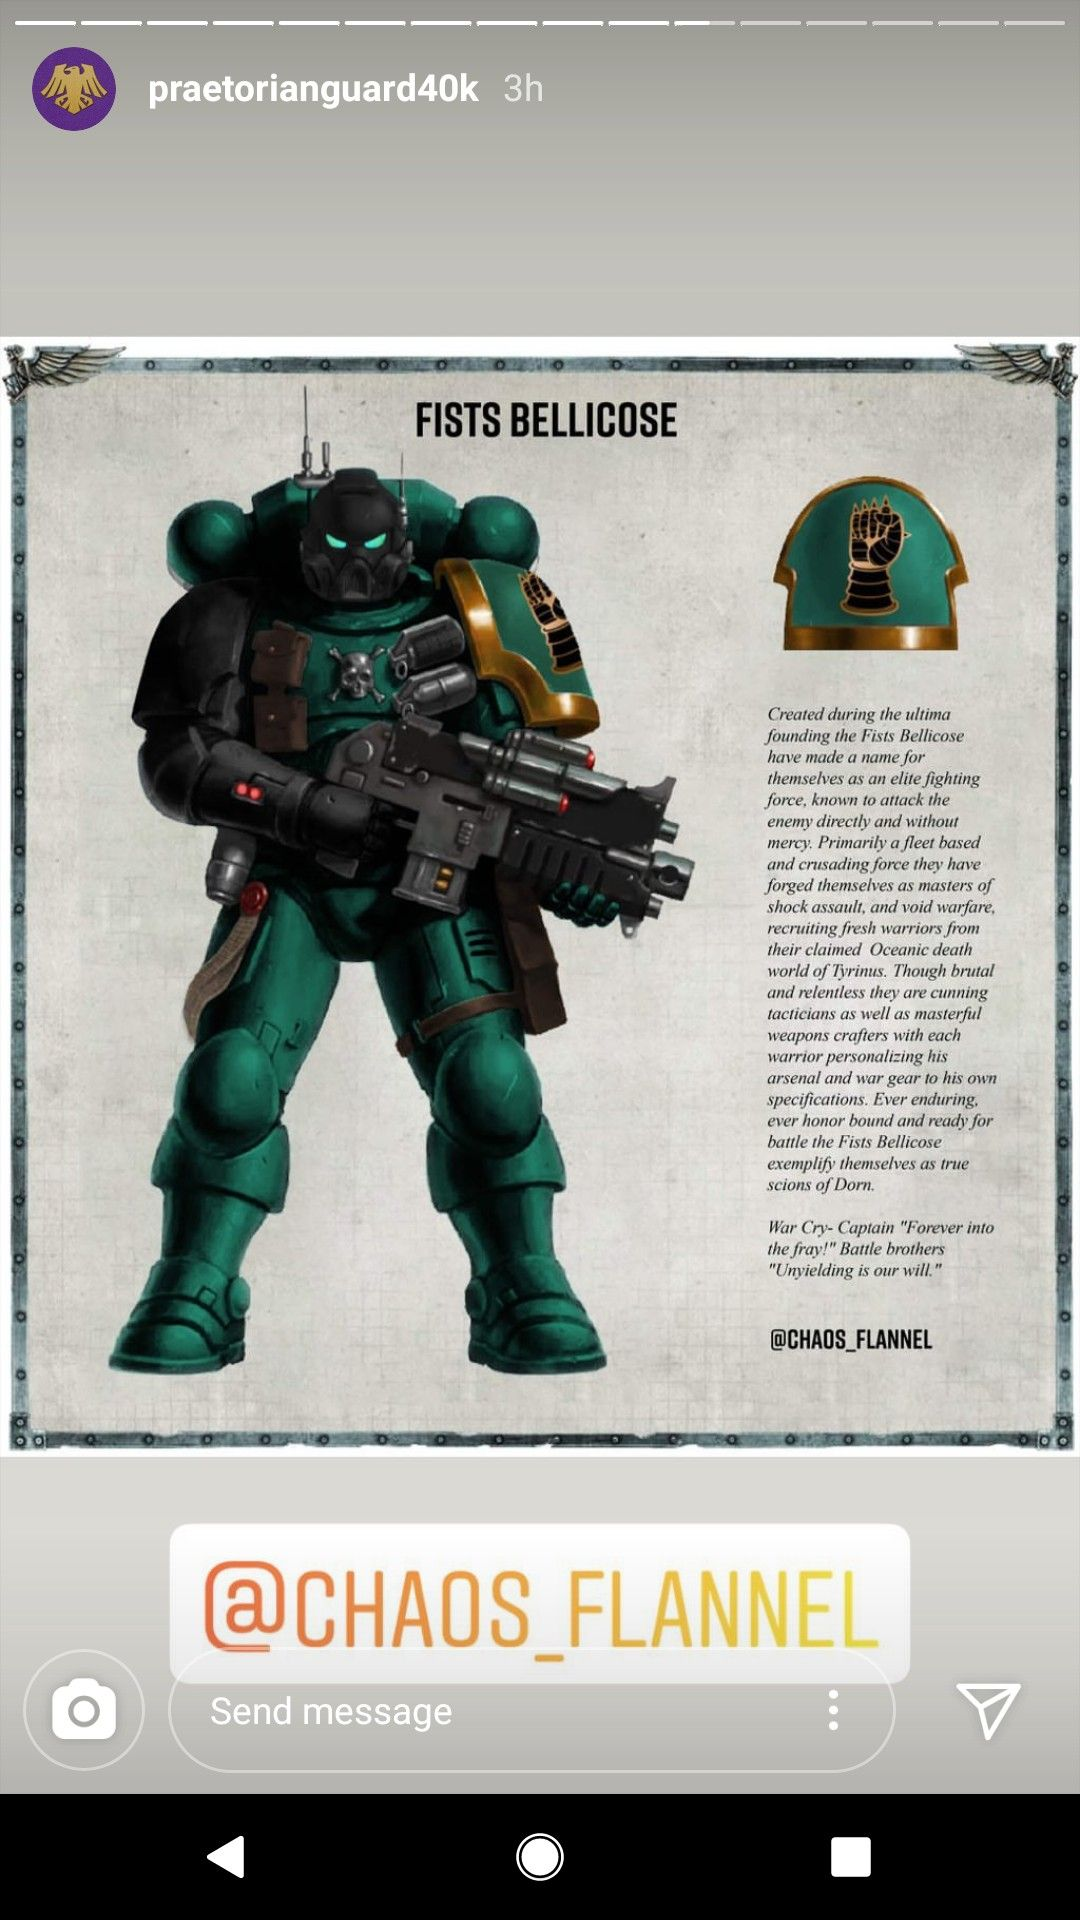 Pin by Matthew Hunt on Other People's Space Marine MInis